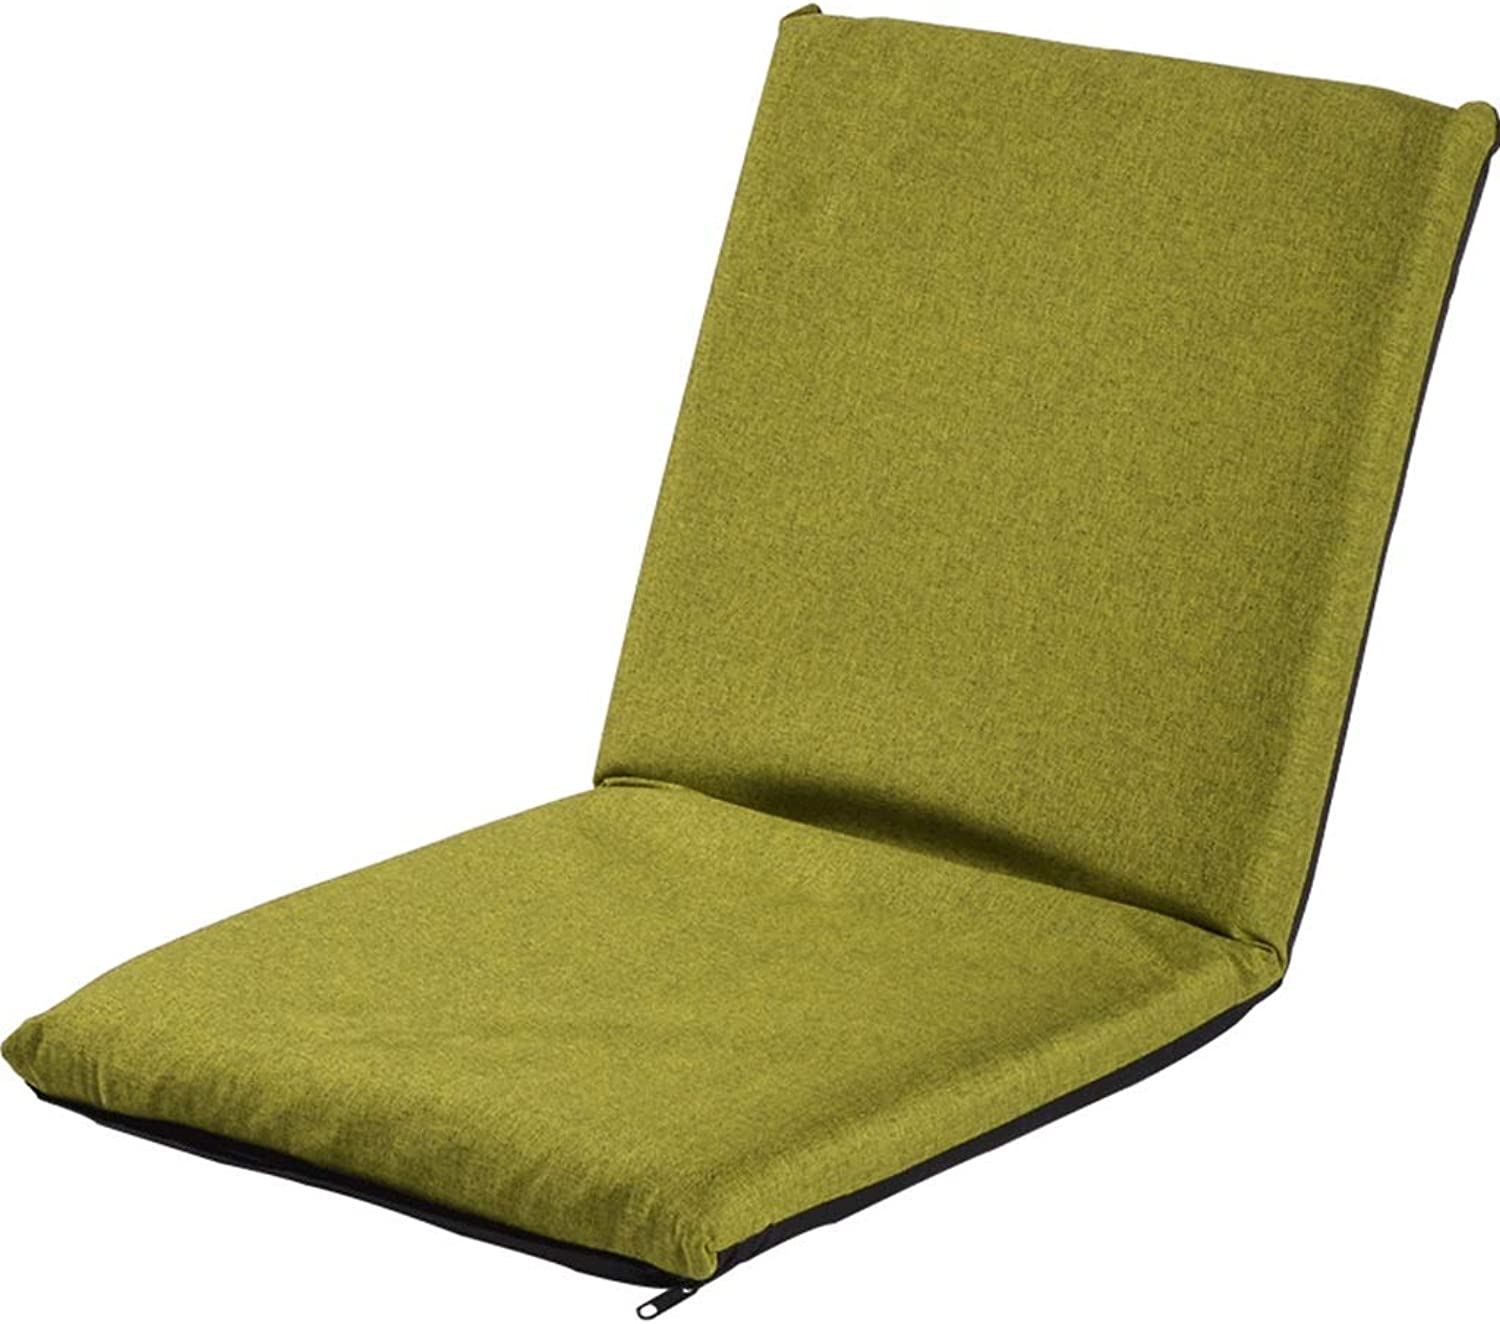 Floor Lazy Couch Chair - Single Legless Chair Multi-Function Bed Chair Leisure Lounge Chair, Adjustable Relaxing Lazy Sofa Seat (color   Green)